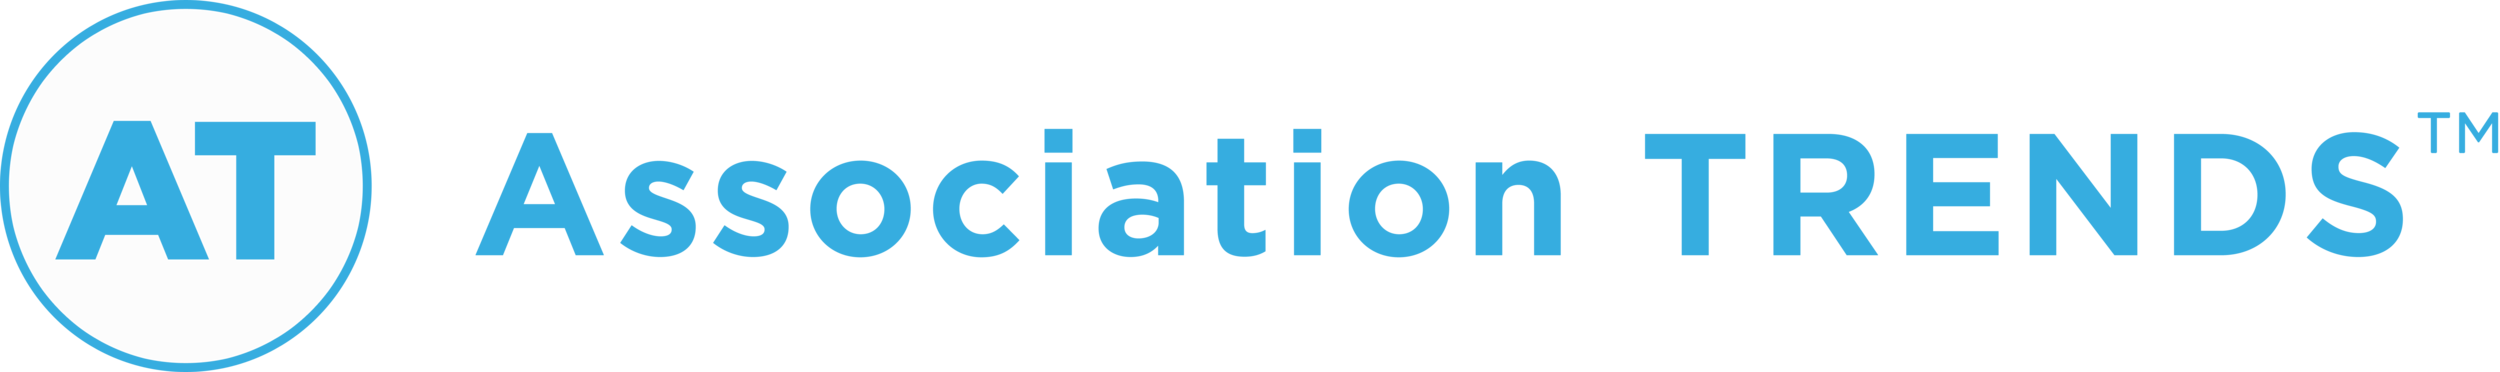 association-trends-logo-with-icon-blue[1].png